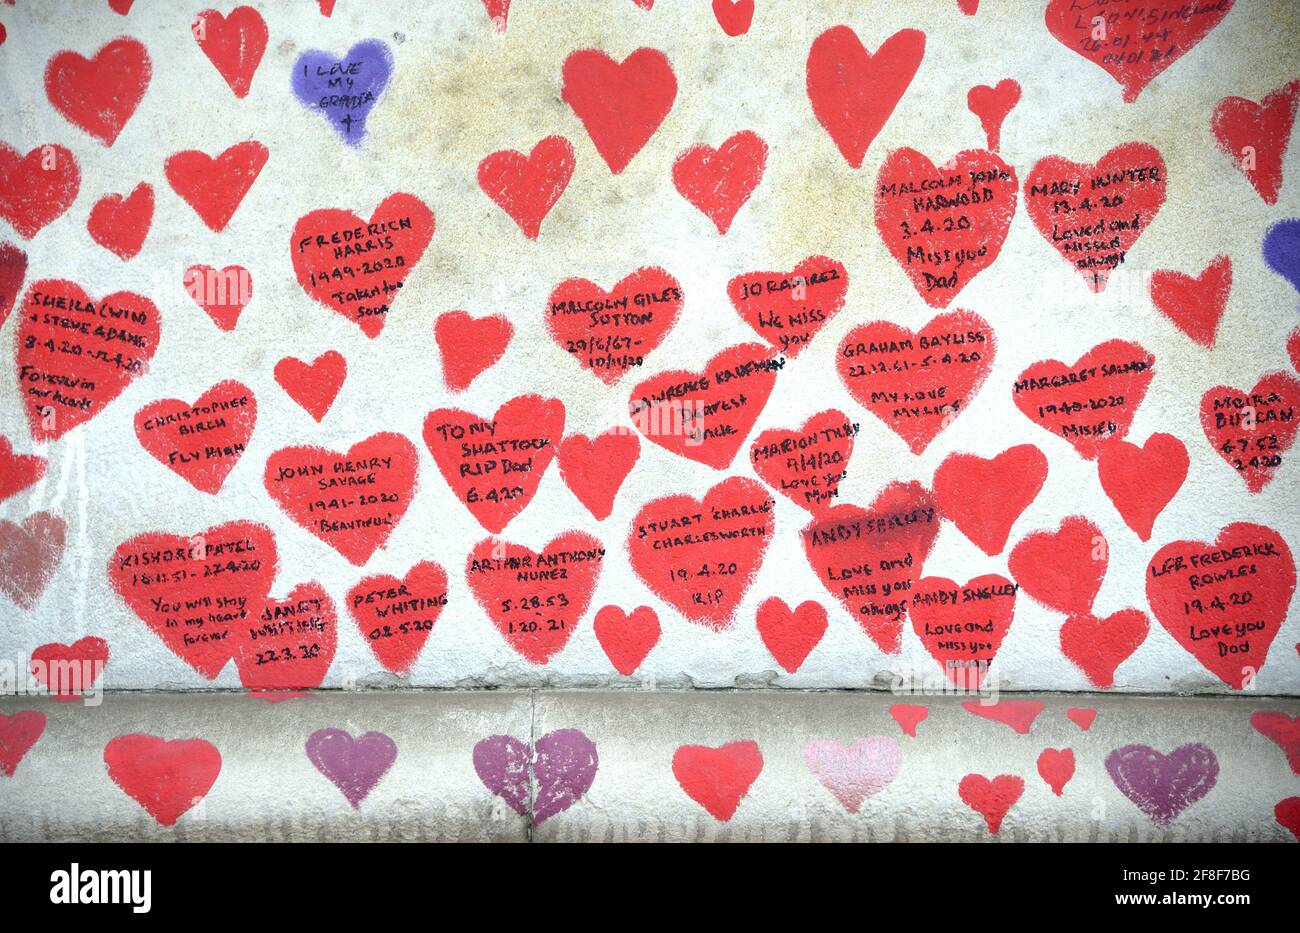 London, England, UK. National Covid Memorial Wall along the Thames Embankment, opposite the Houses of Parliament, c150,000 hearts commemorating the li Stock Photo